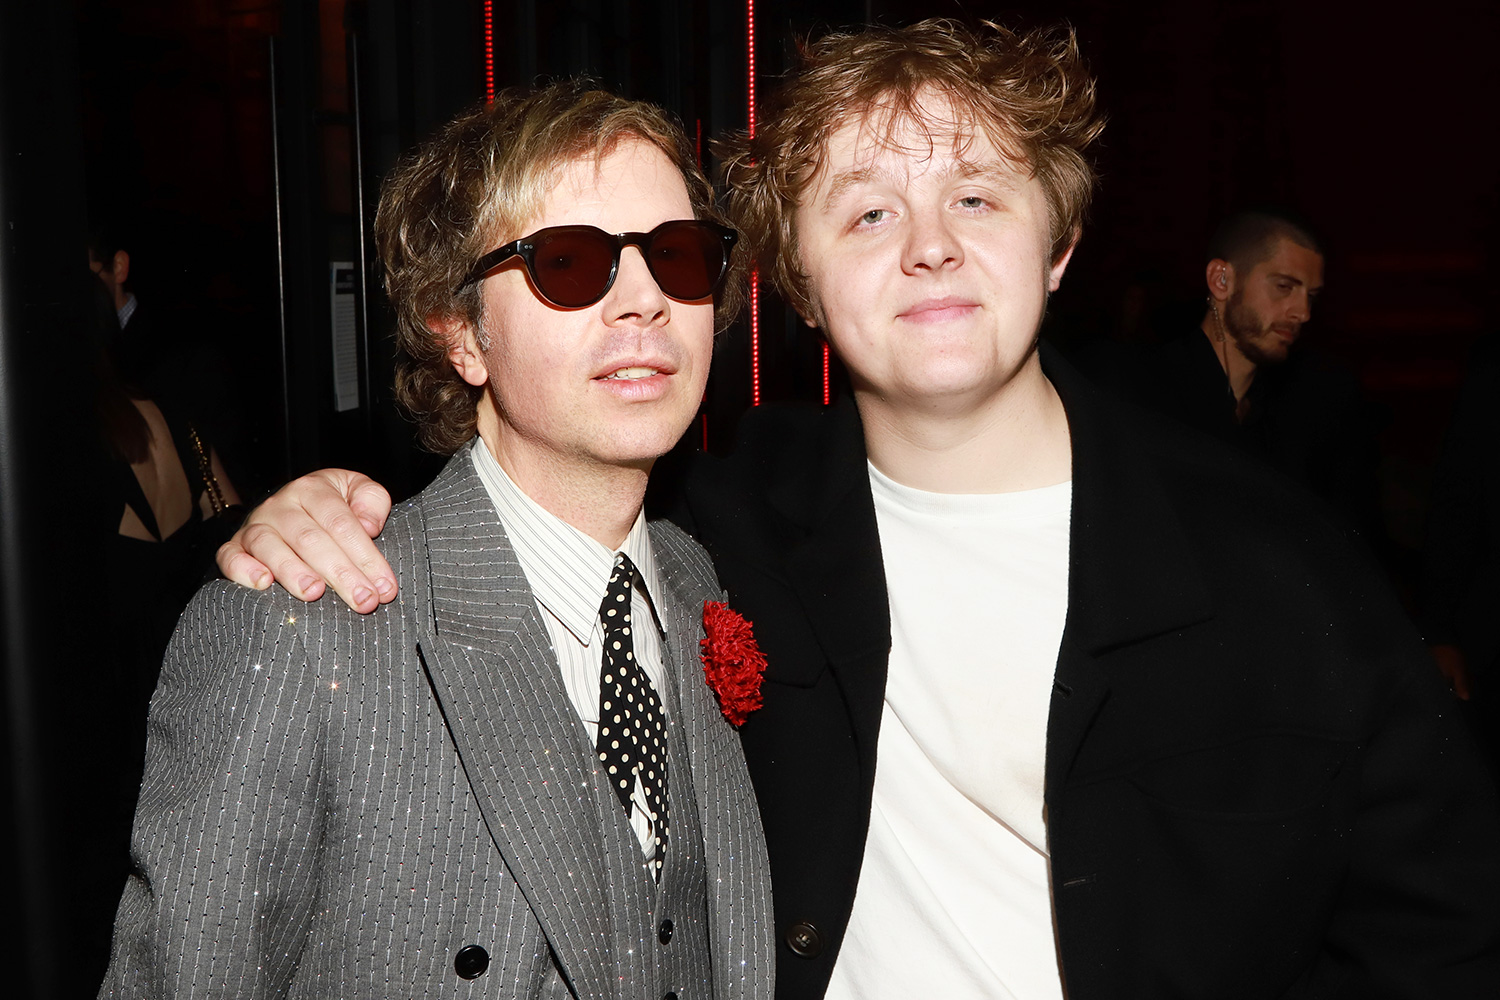 Beck (L) and Lewis Capaldi